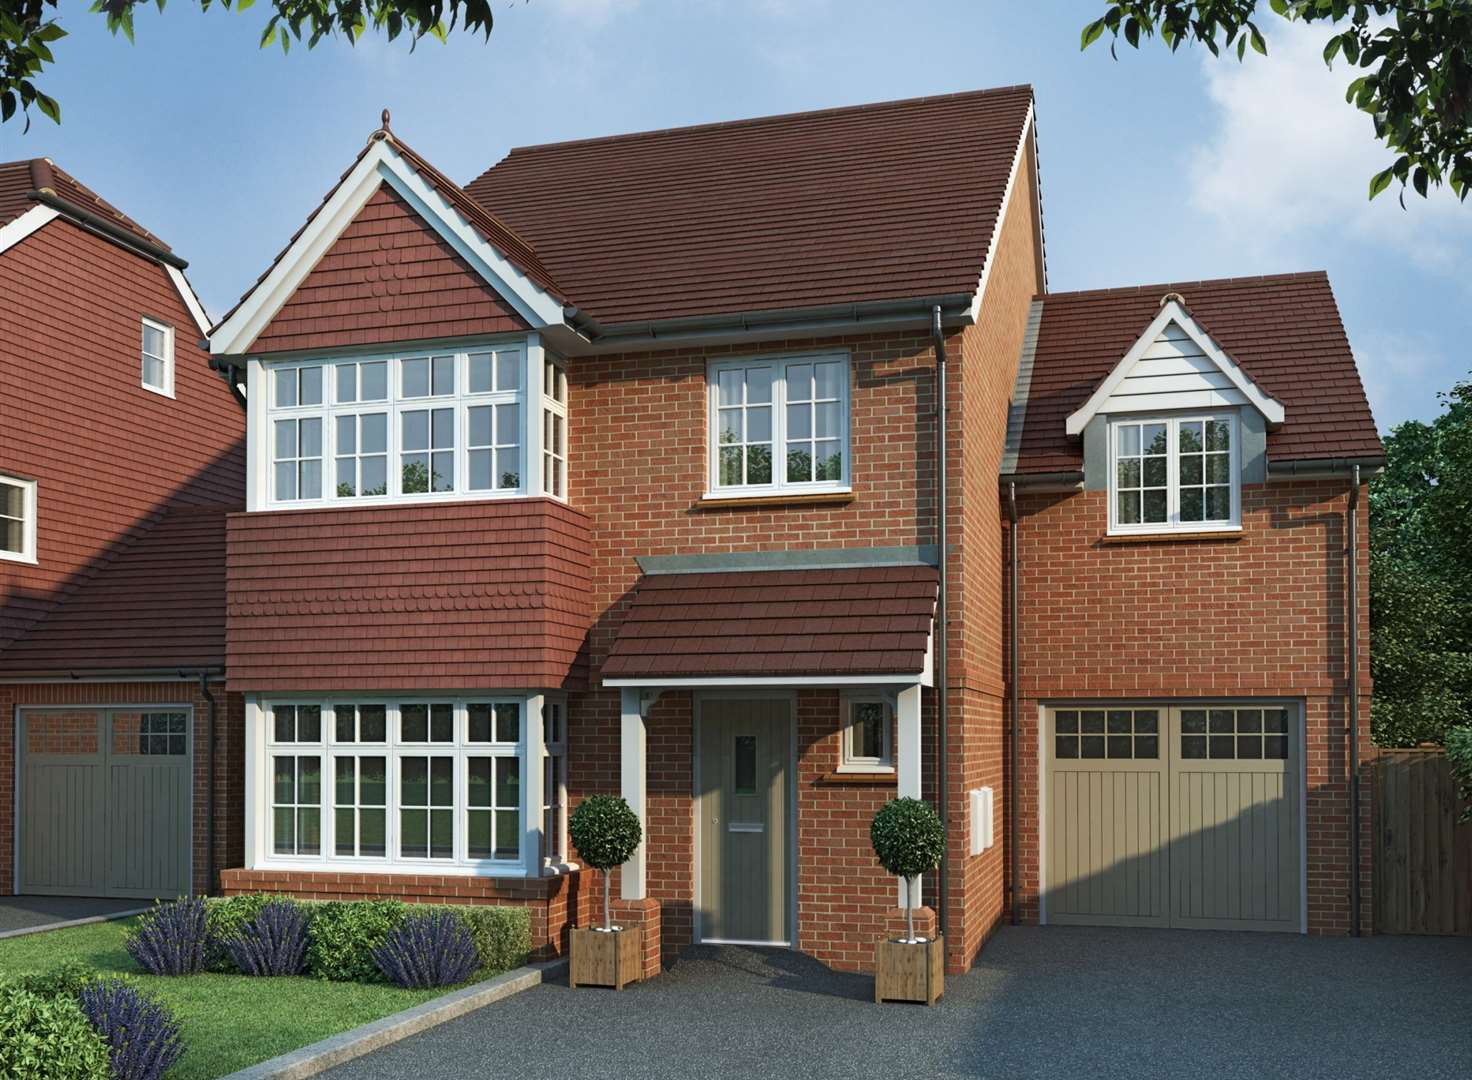 New Tonbridge homes released for sale